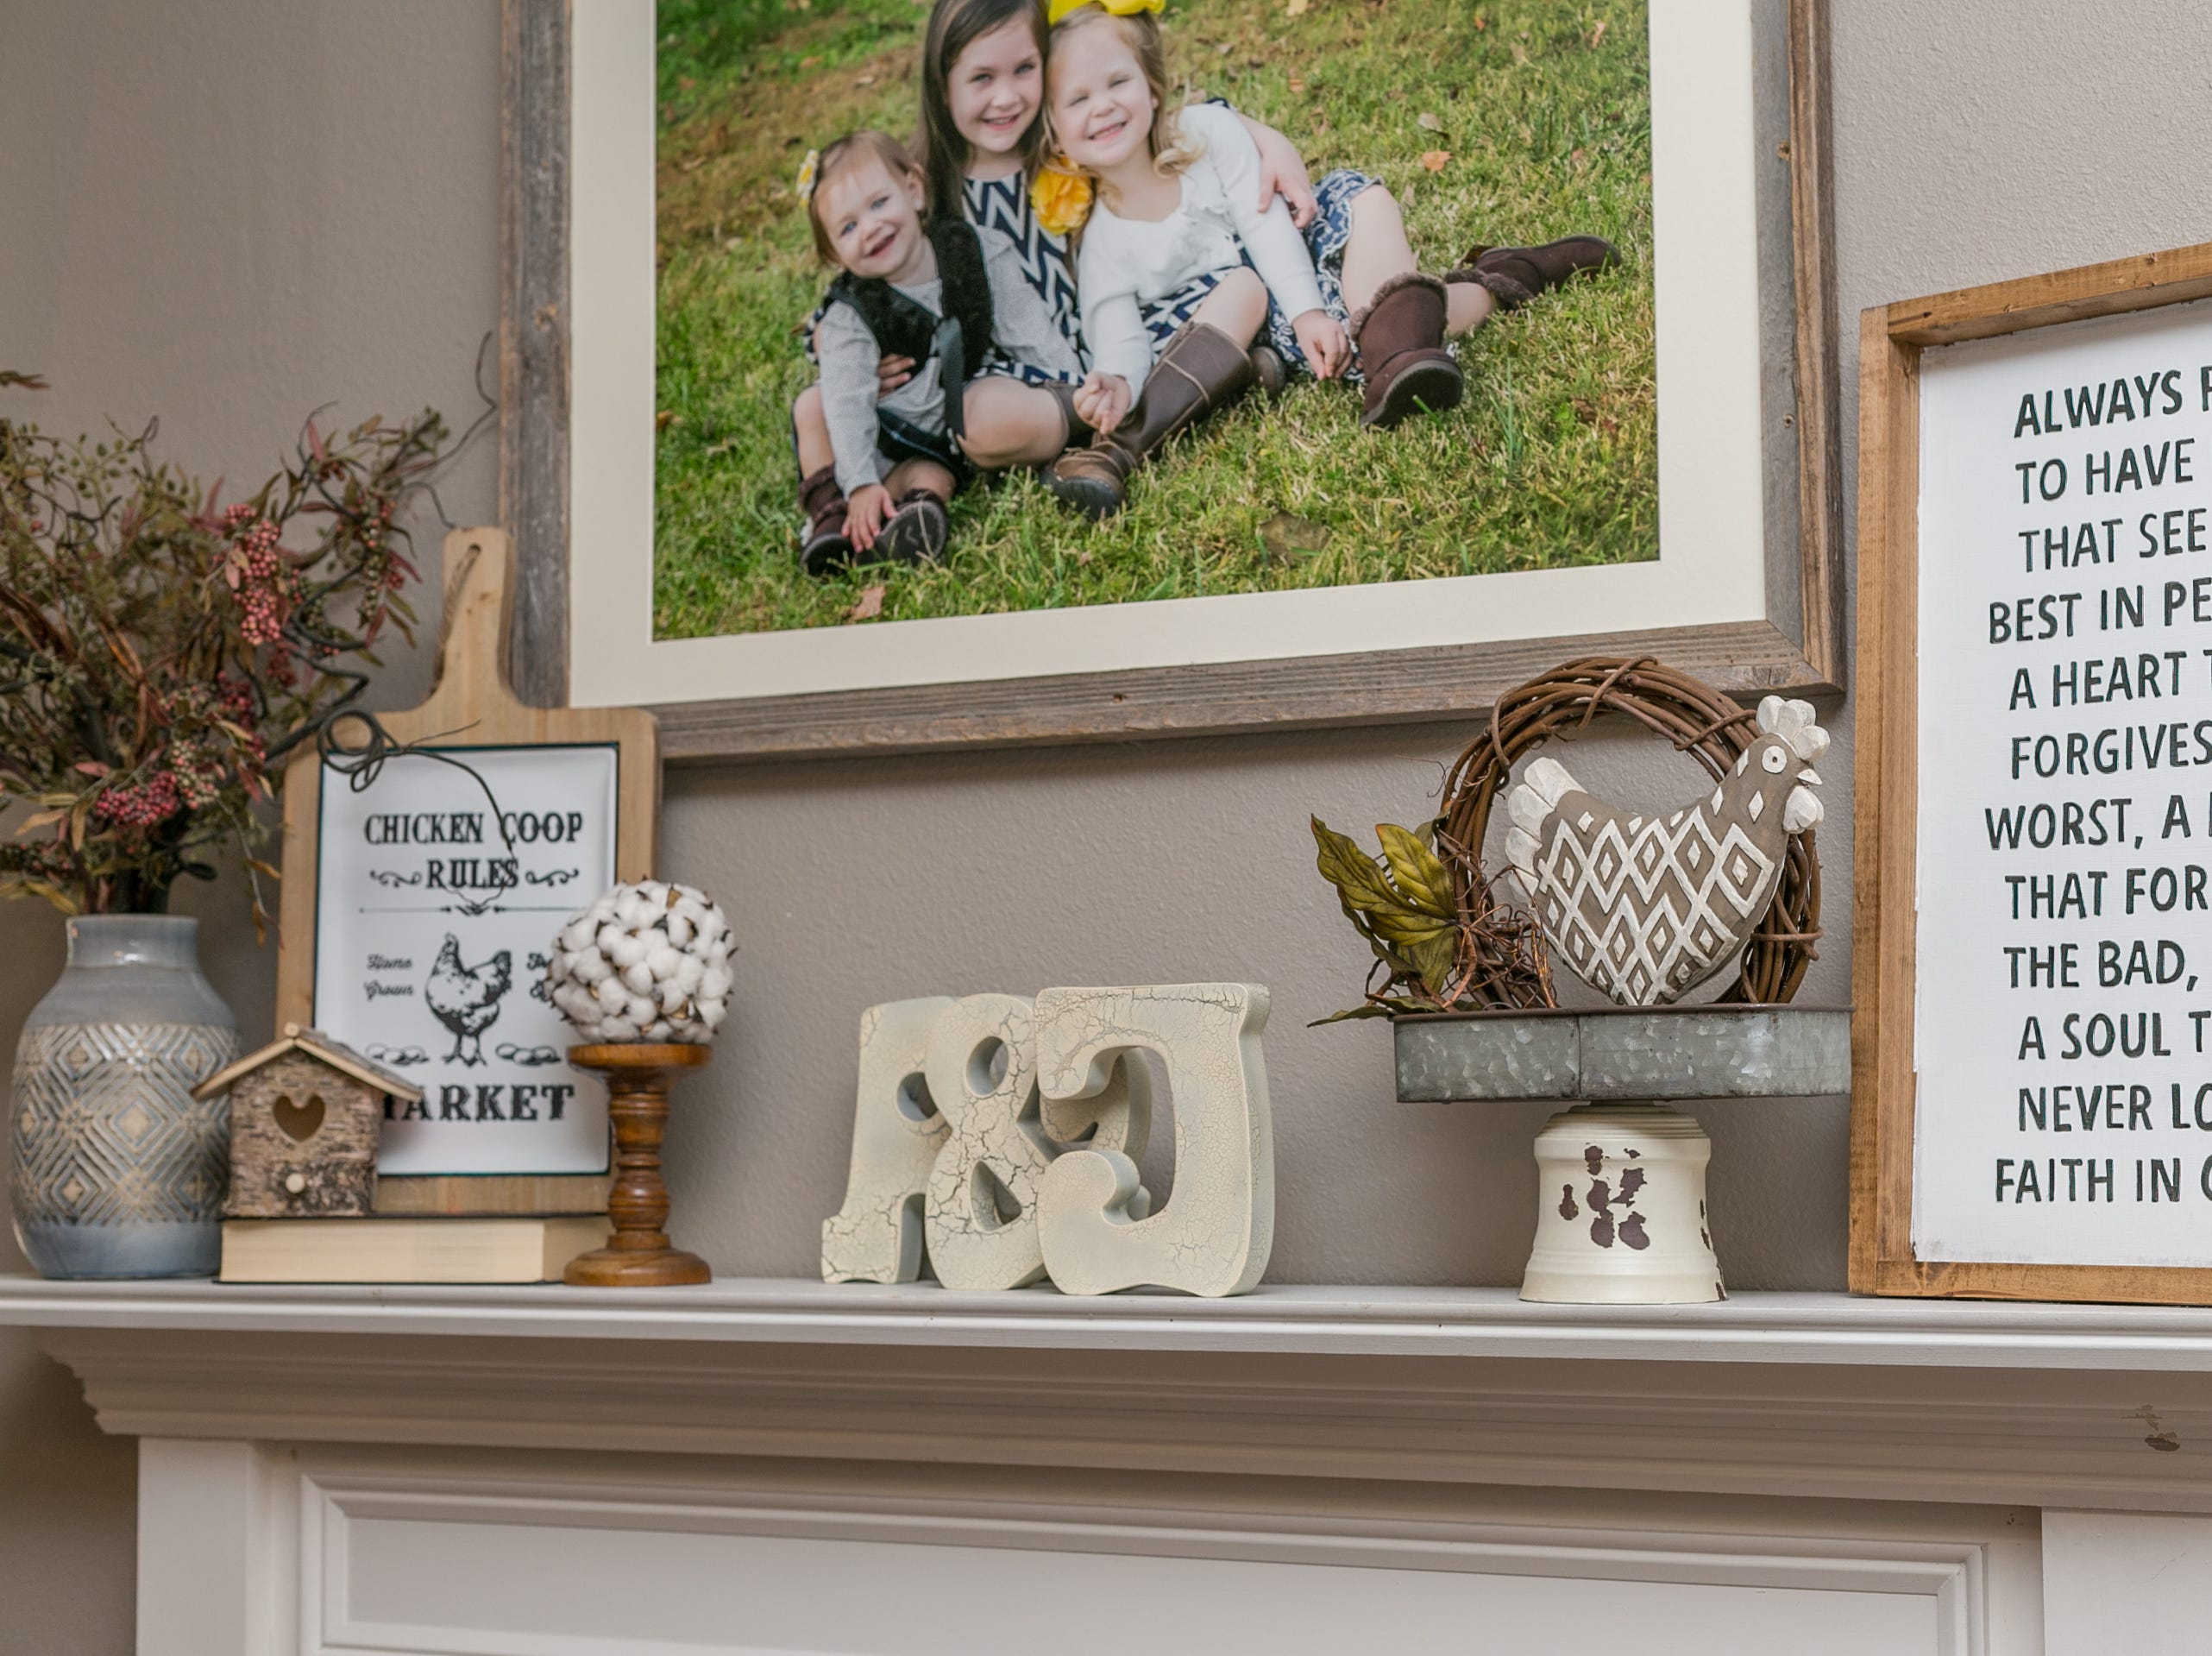 Scenes from the home of Amanda and Joe Driscoll